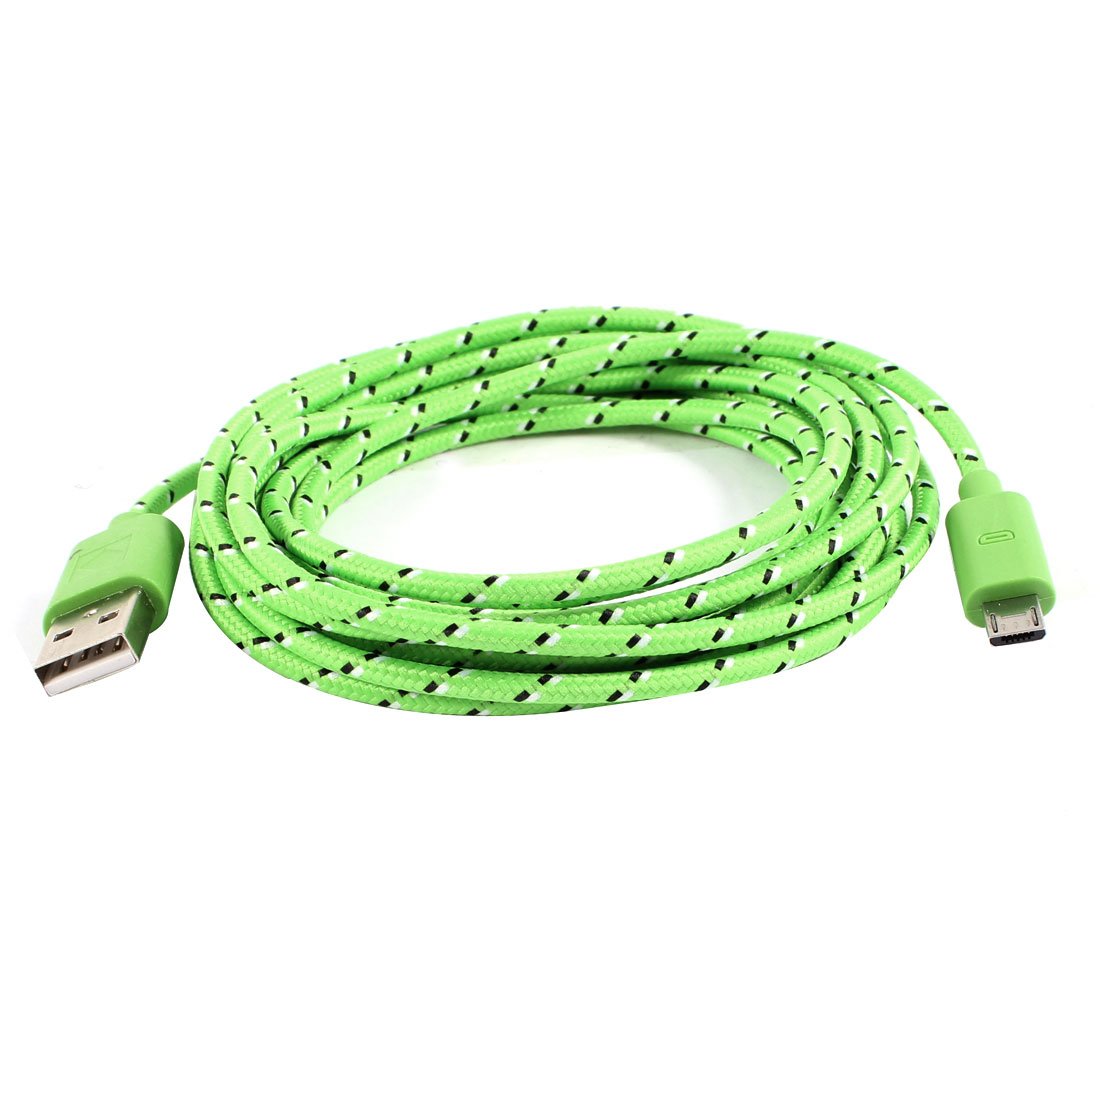 10ft USB 2.0 to Micro USB Roud Data Charge Cable Cord Green for HTC